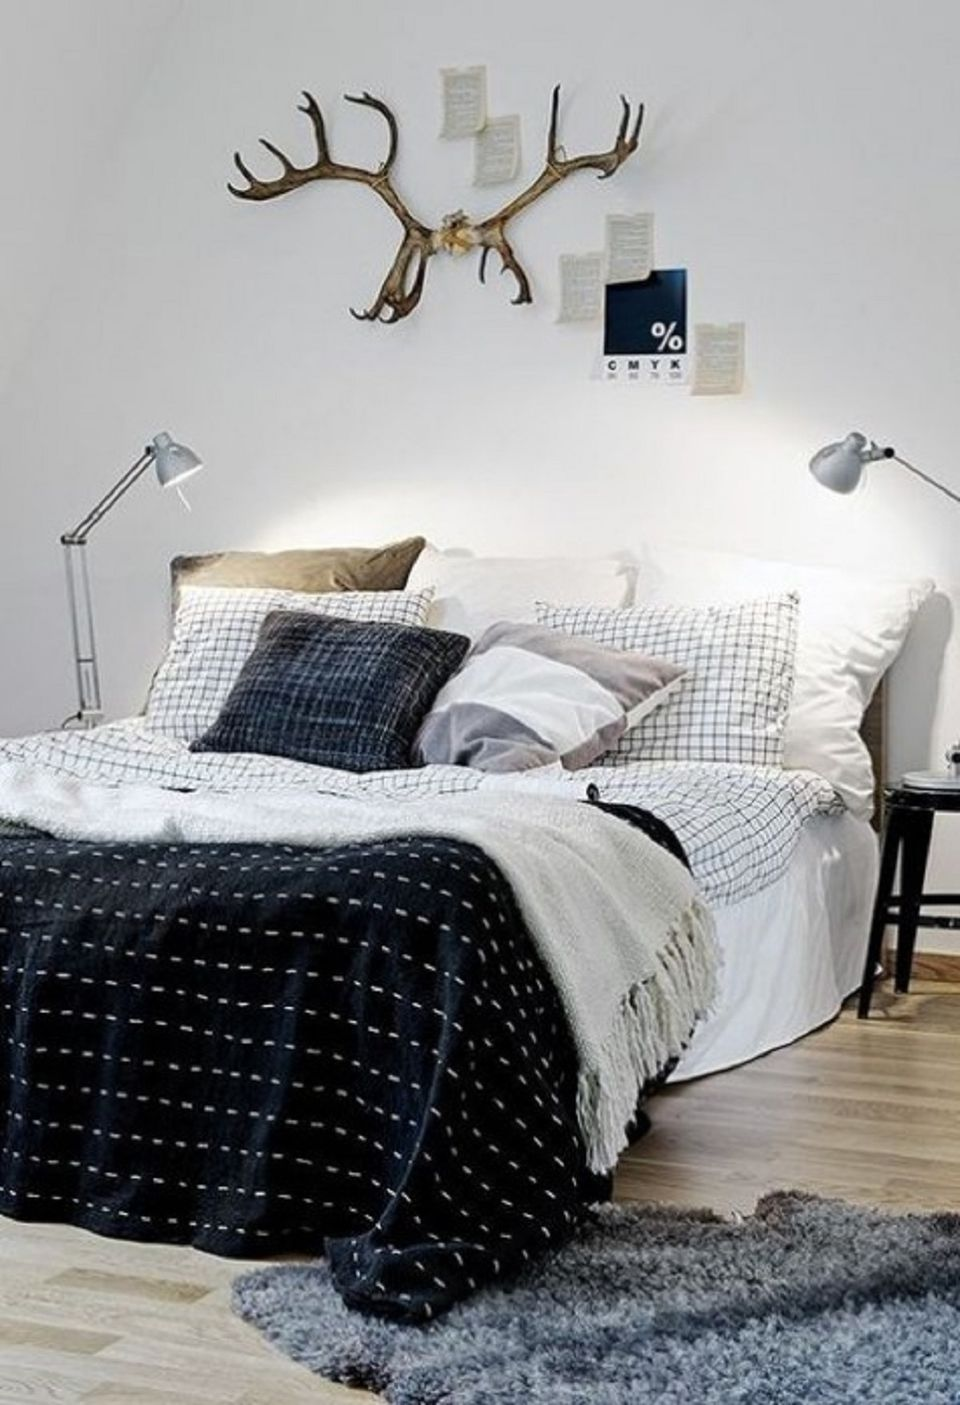 25 Scandinavian Bedroom Design Ideas